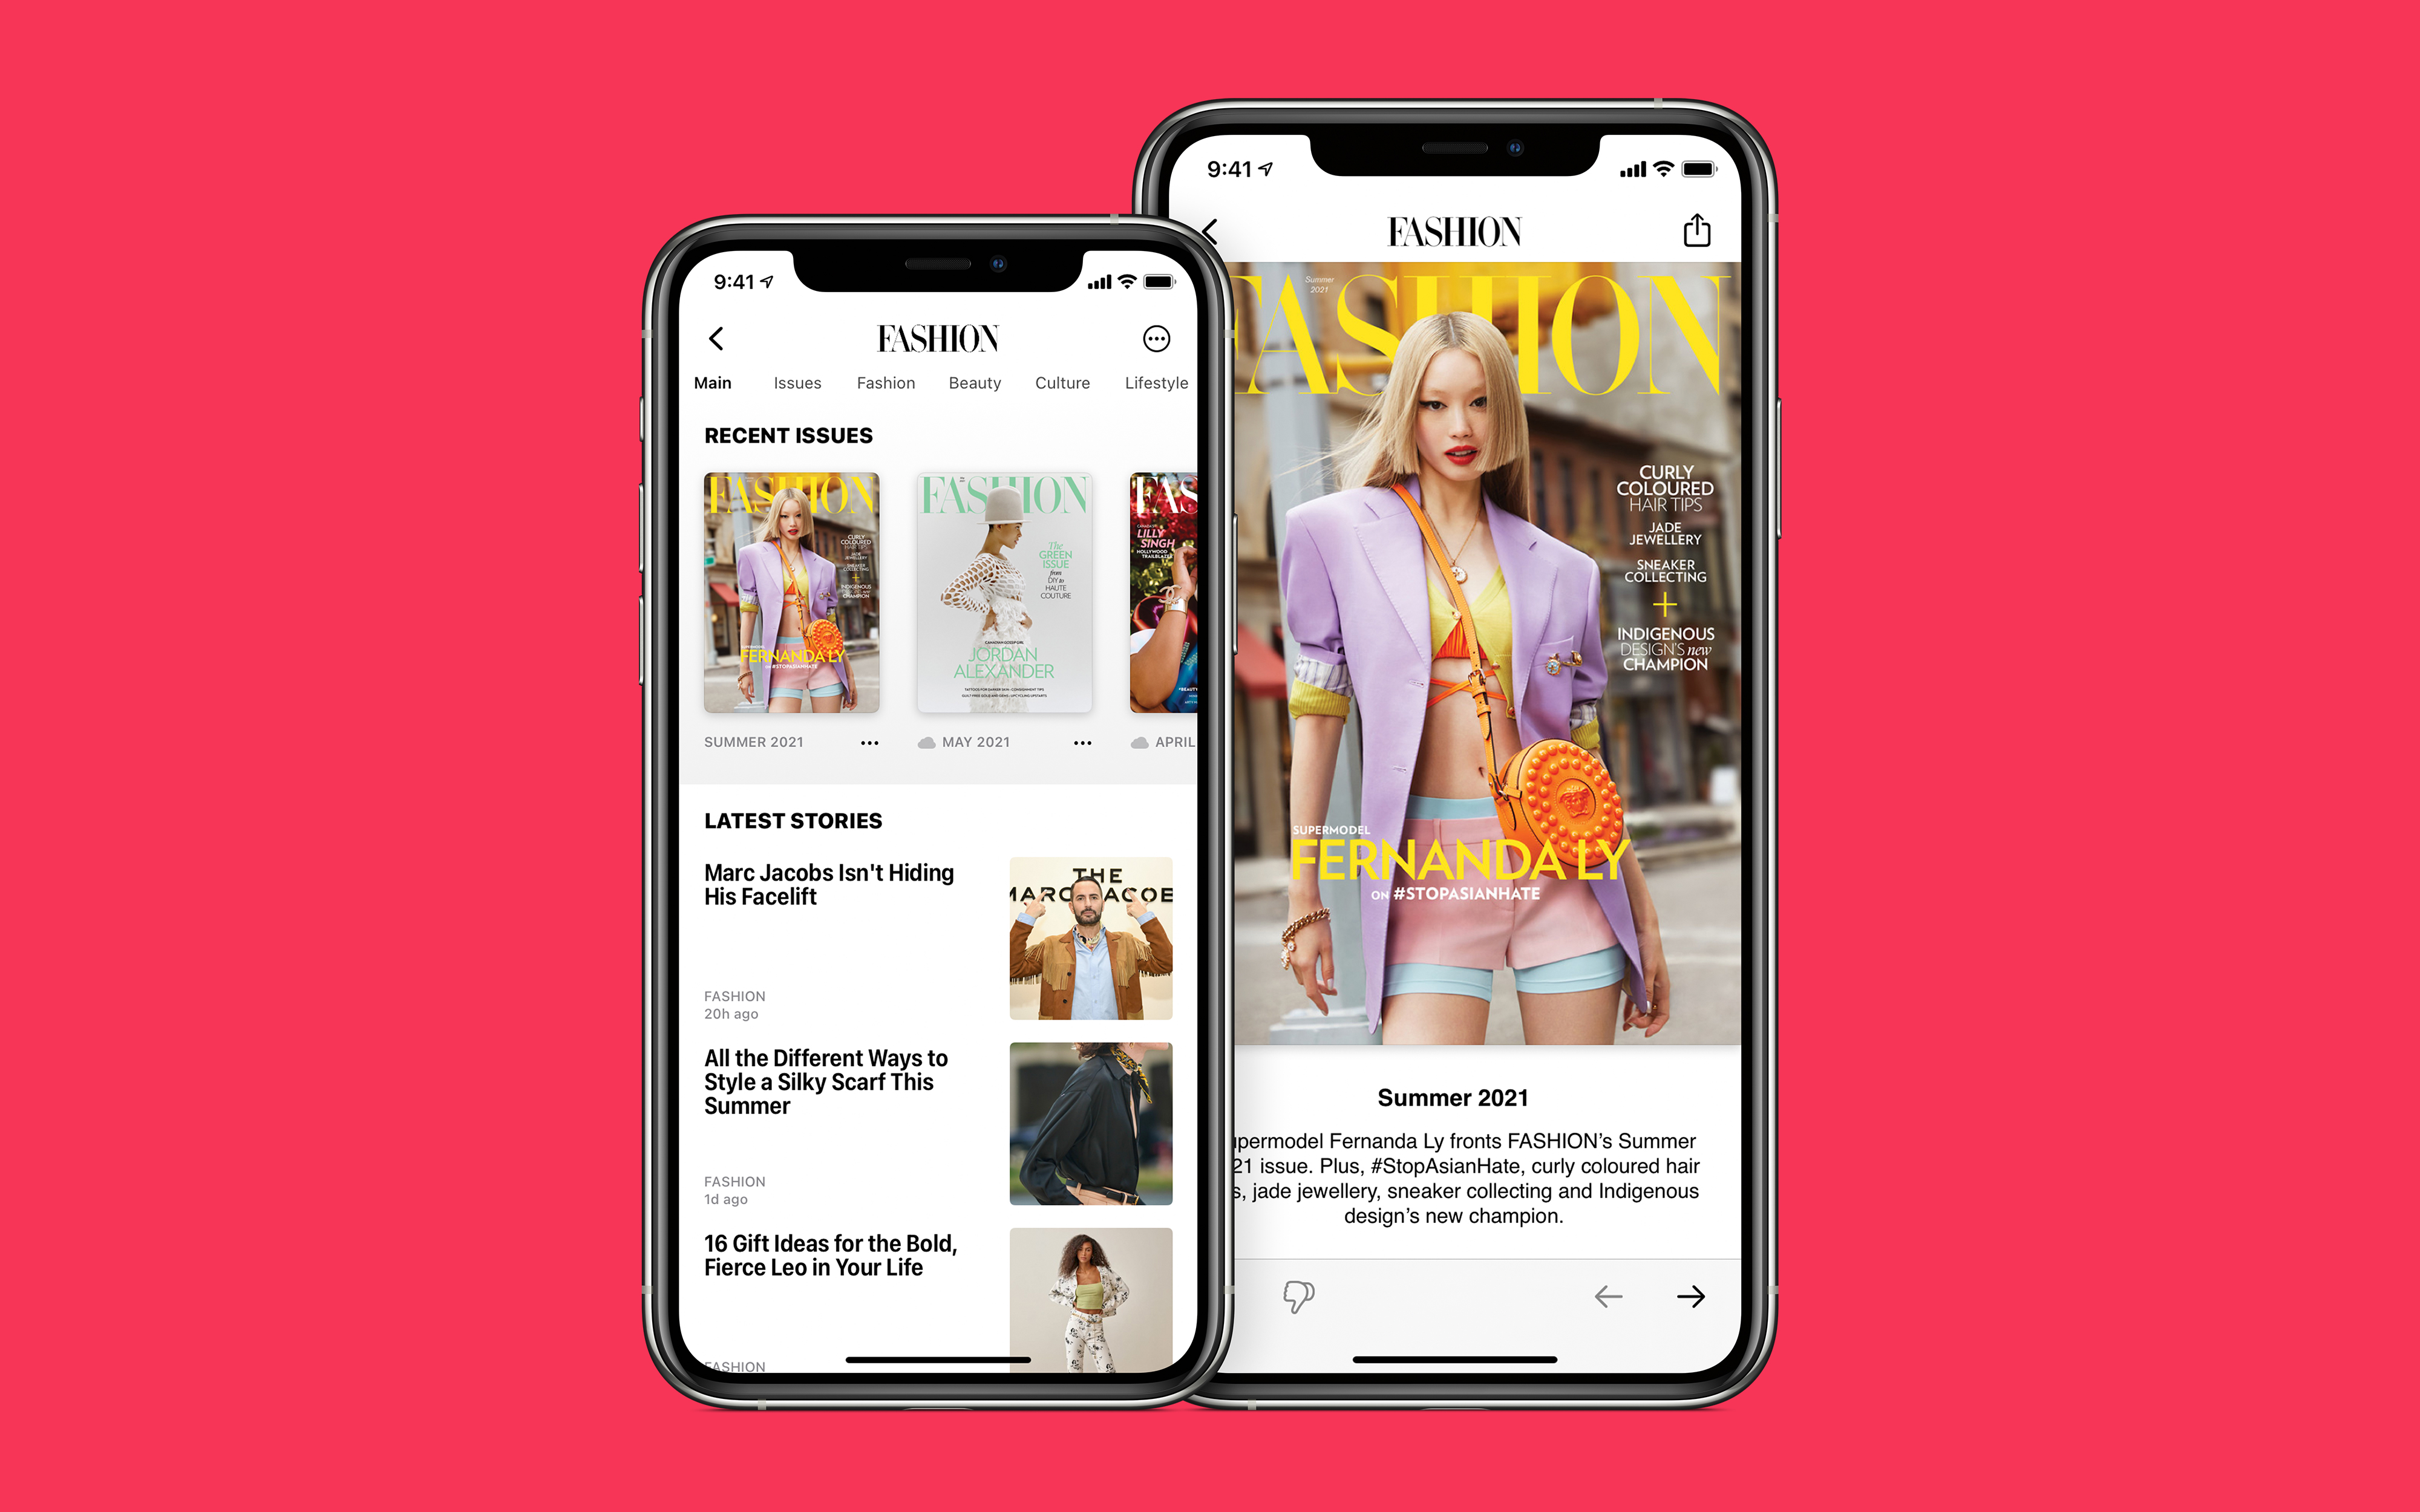 FASHION Magazine is now available on Apple News+